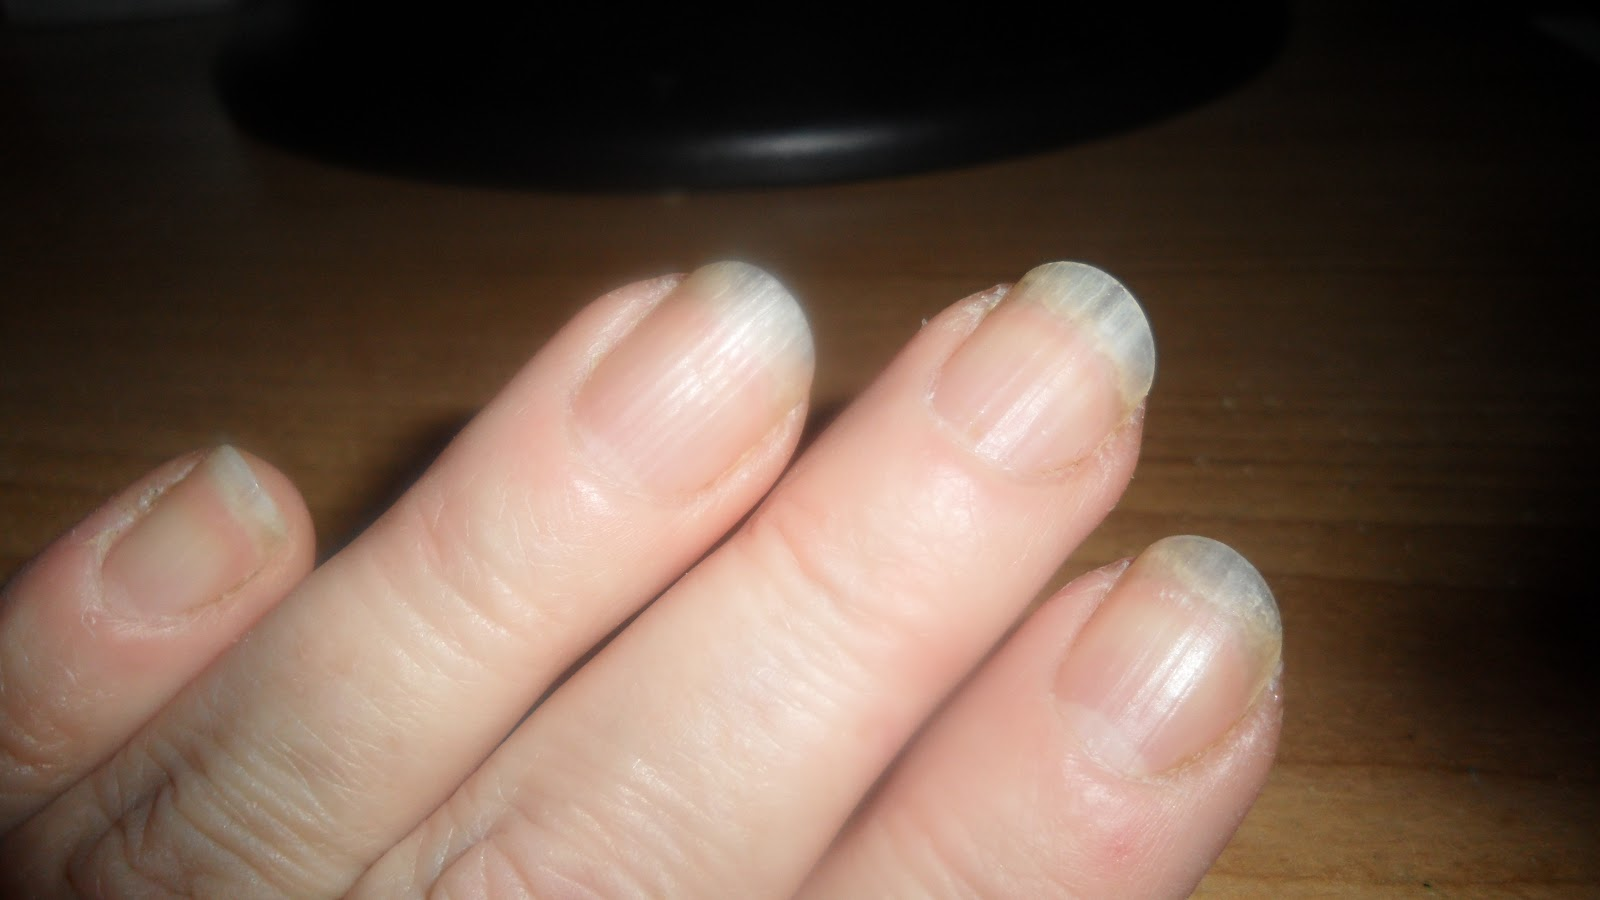 Beauty Blog by Lisa - TIPS from head to toe!: From acrylic damaged